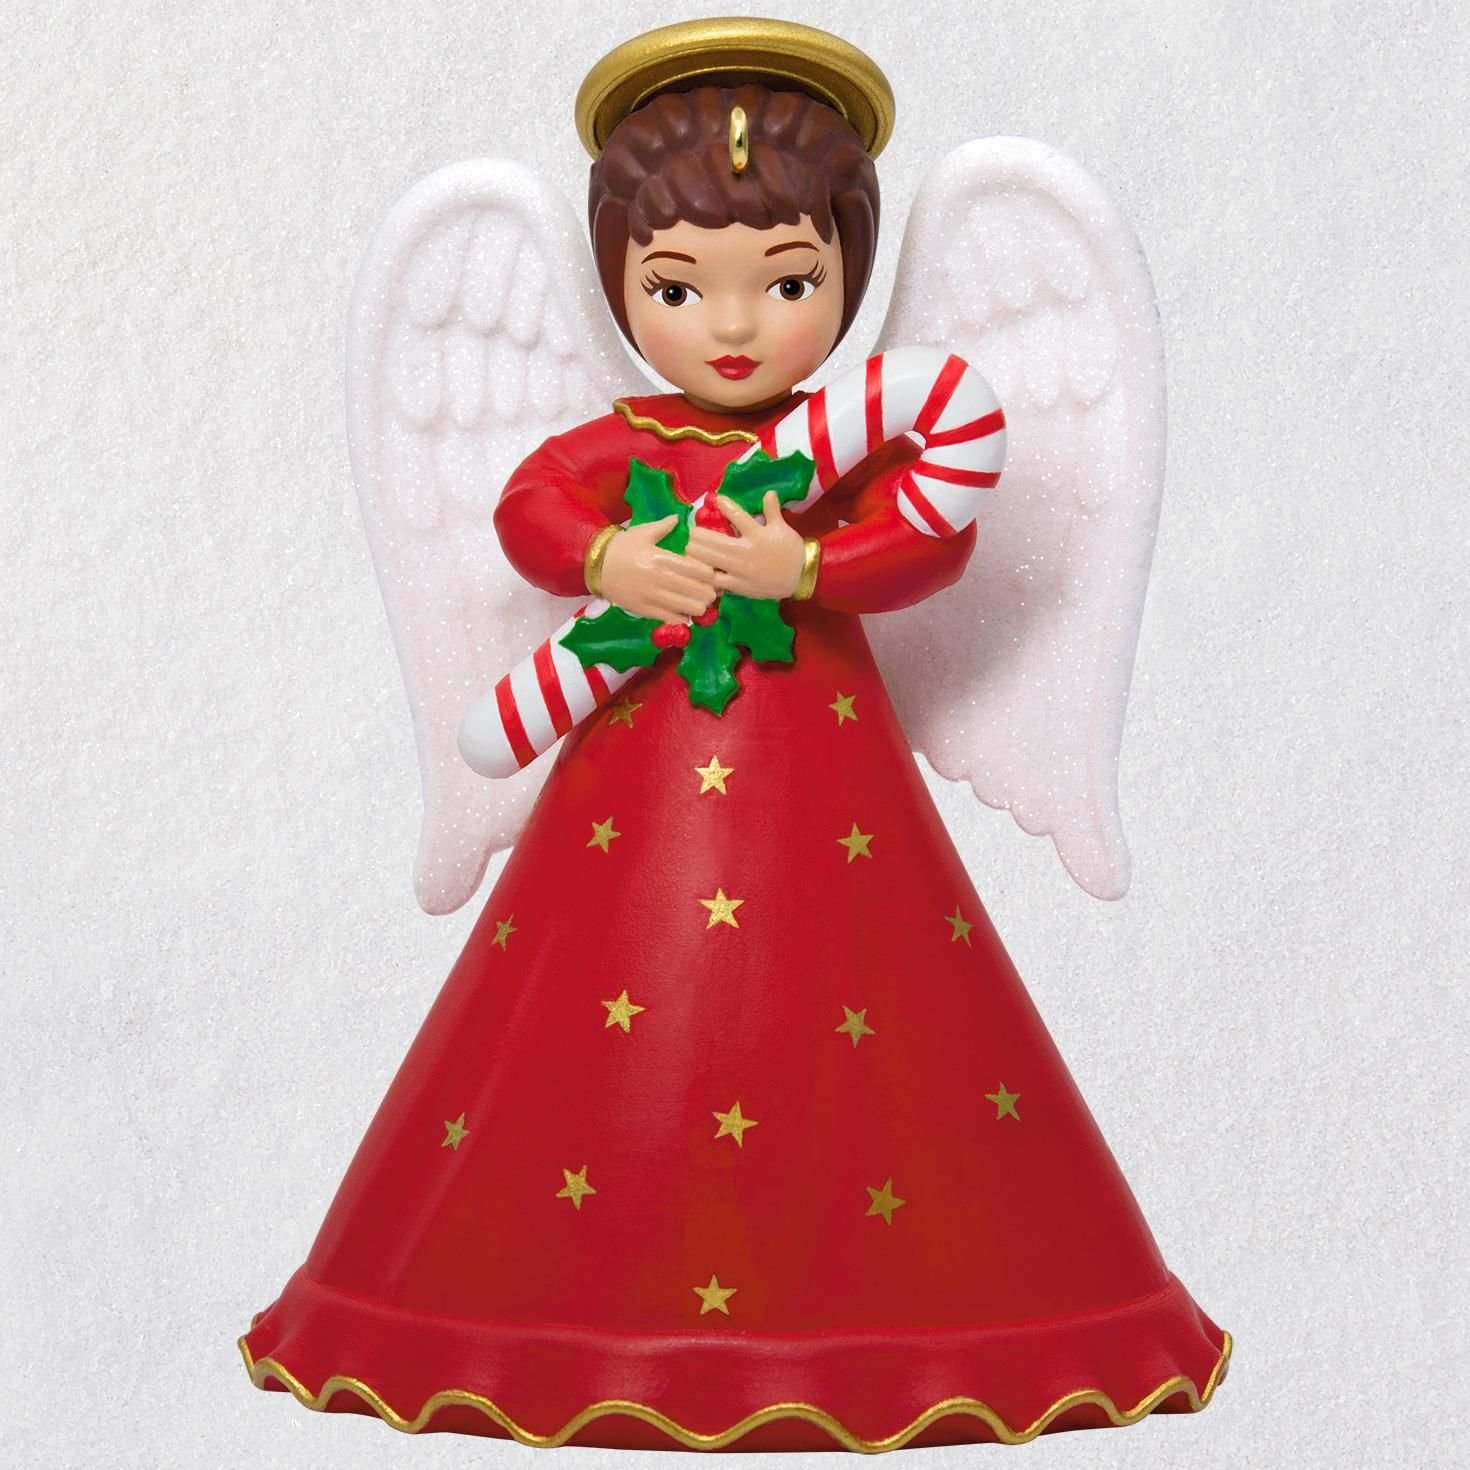 Hallmark Keepsake Christmas Ornament 2018 Year Dated, Heirloom Angels